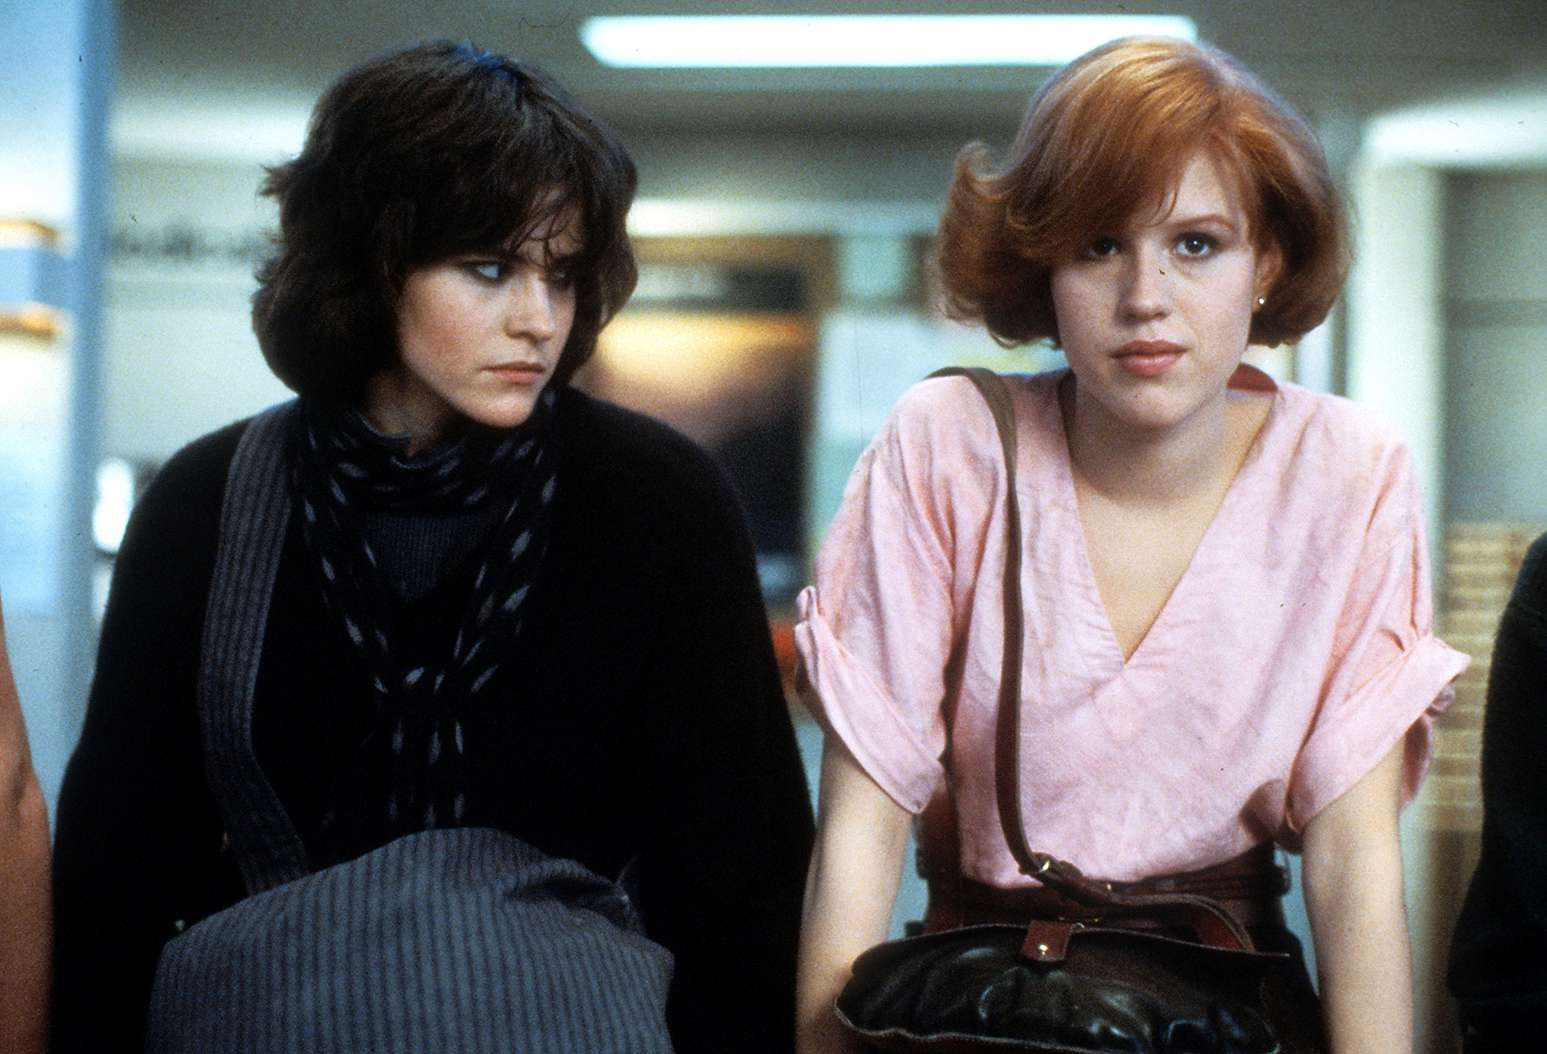 Actresses Ally Sheedy and Molly Ringwald in the 1985 film 'The Breakfast Club'